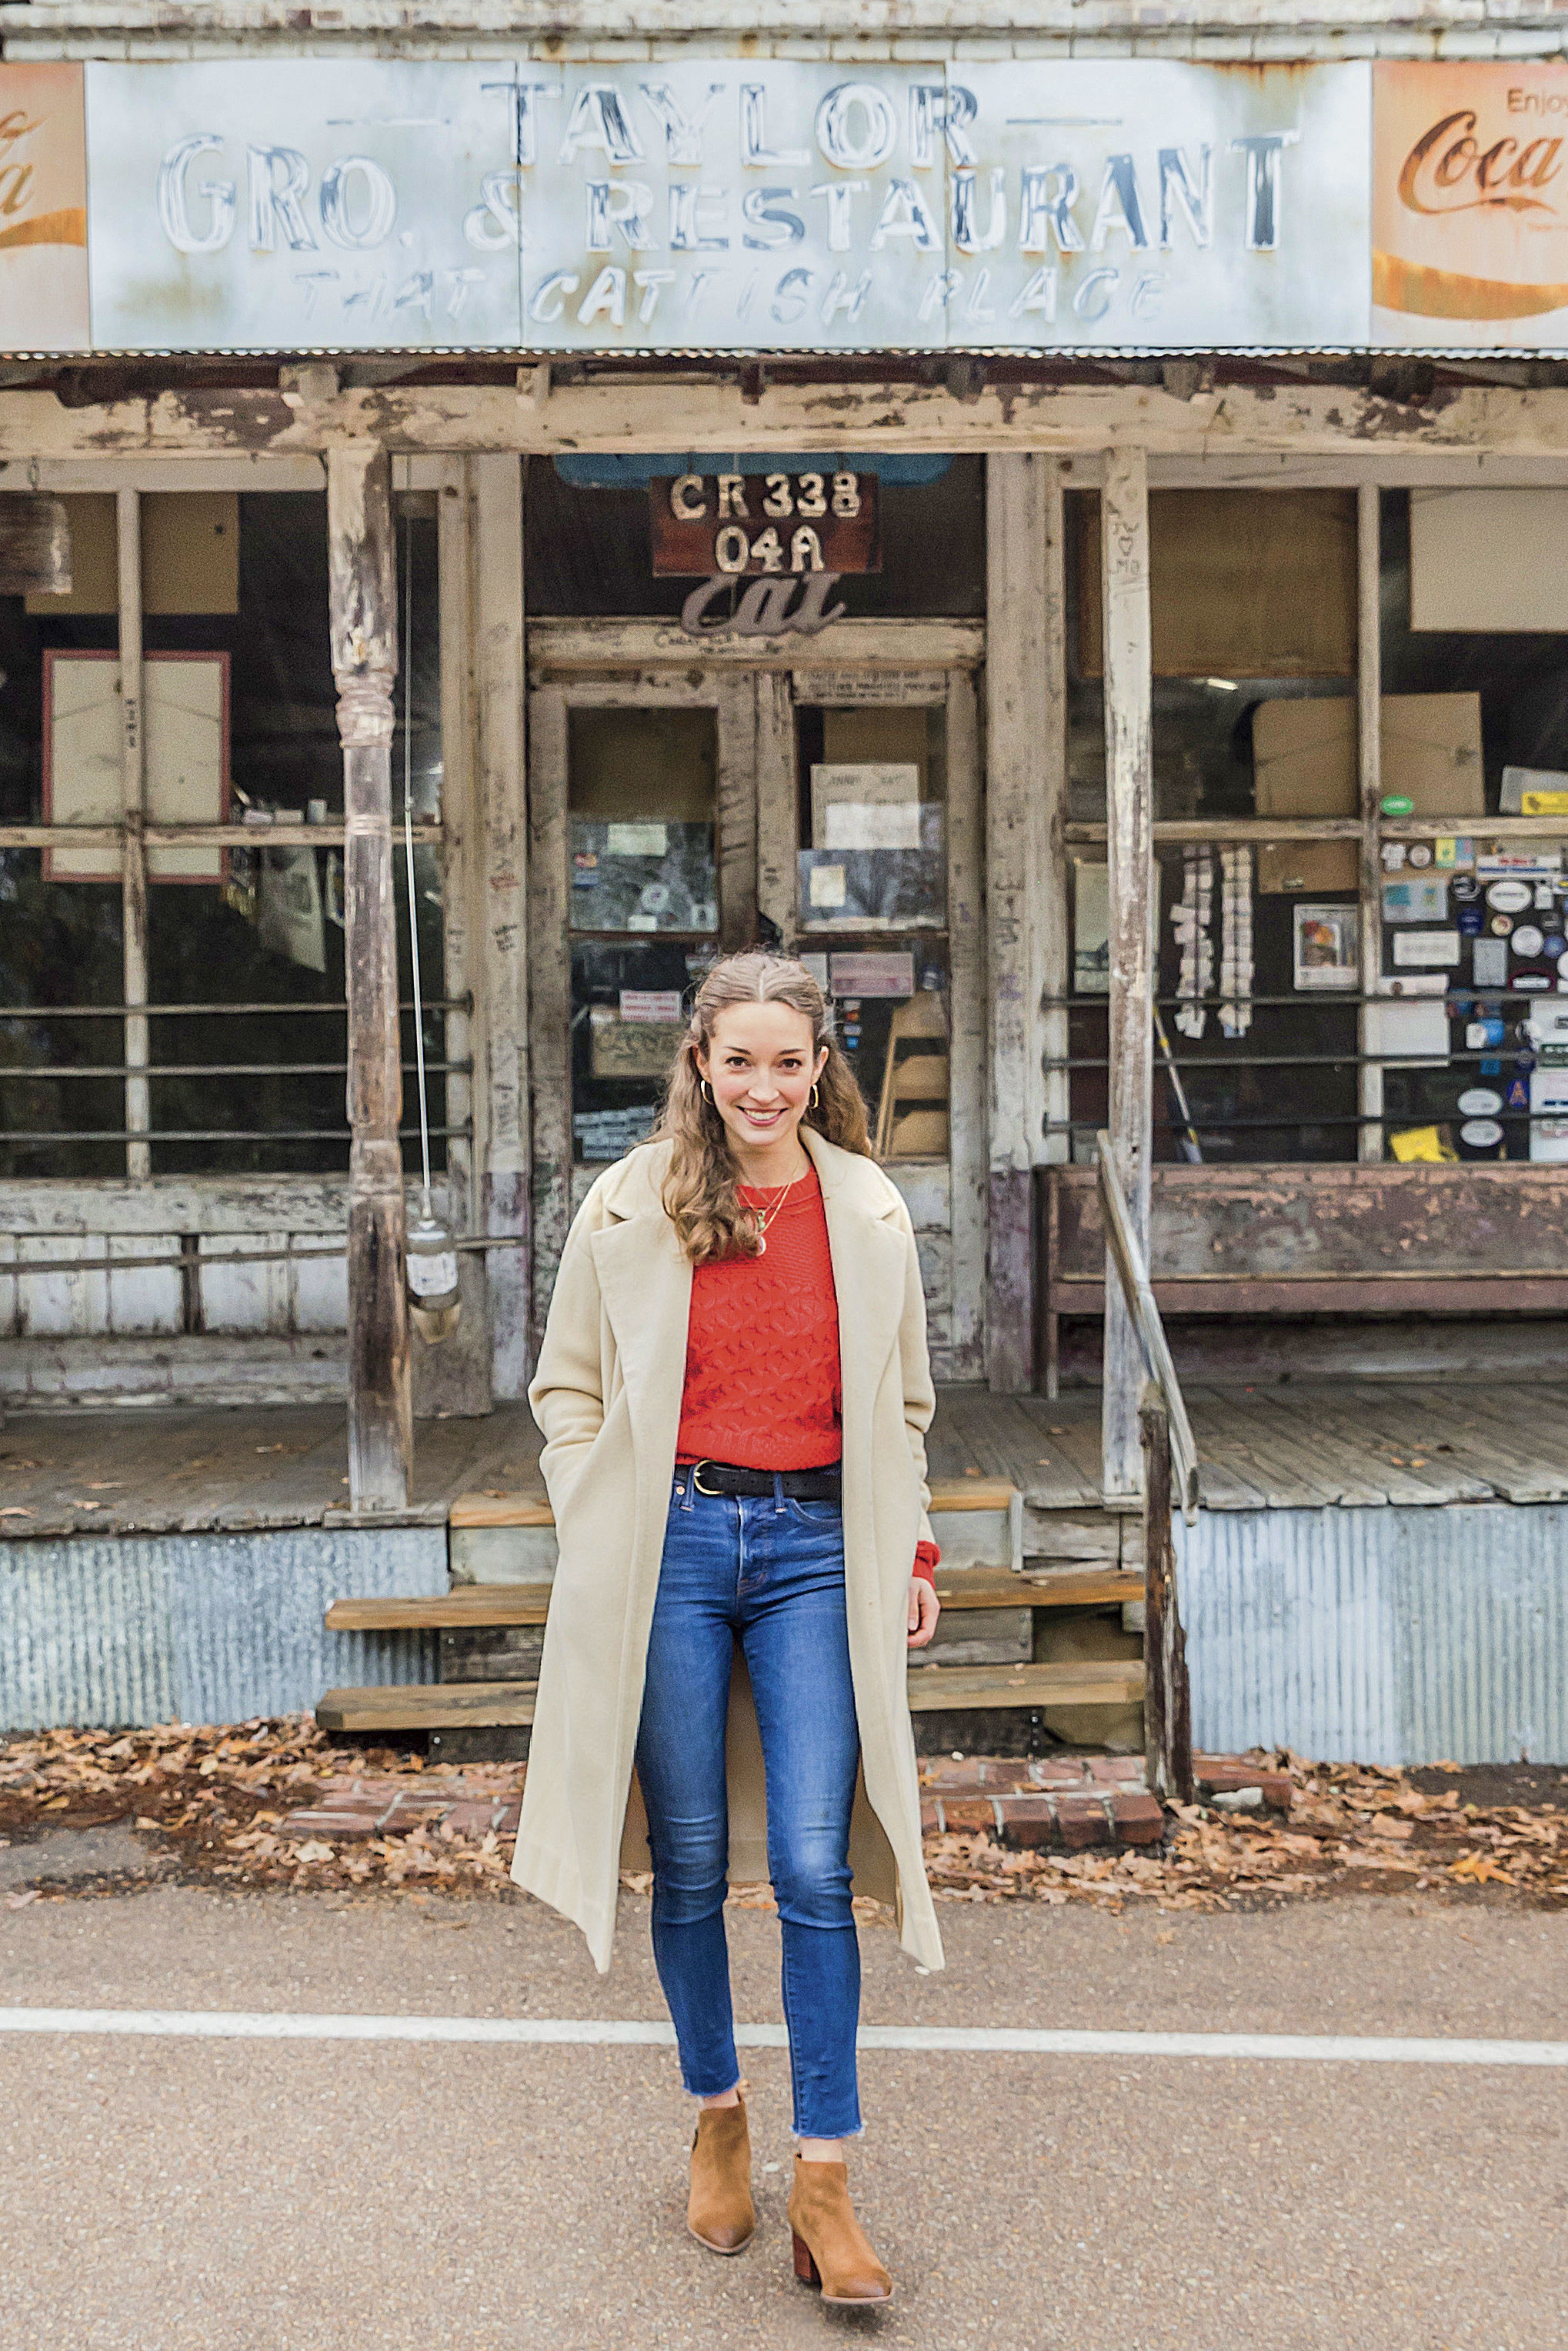 Our Favorite New Jewelry Designer from a Tiny Mississippi Town